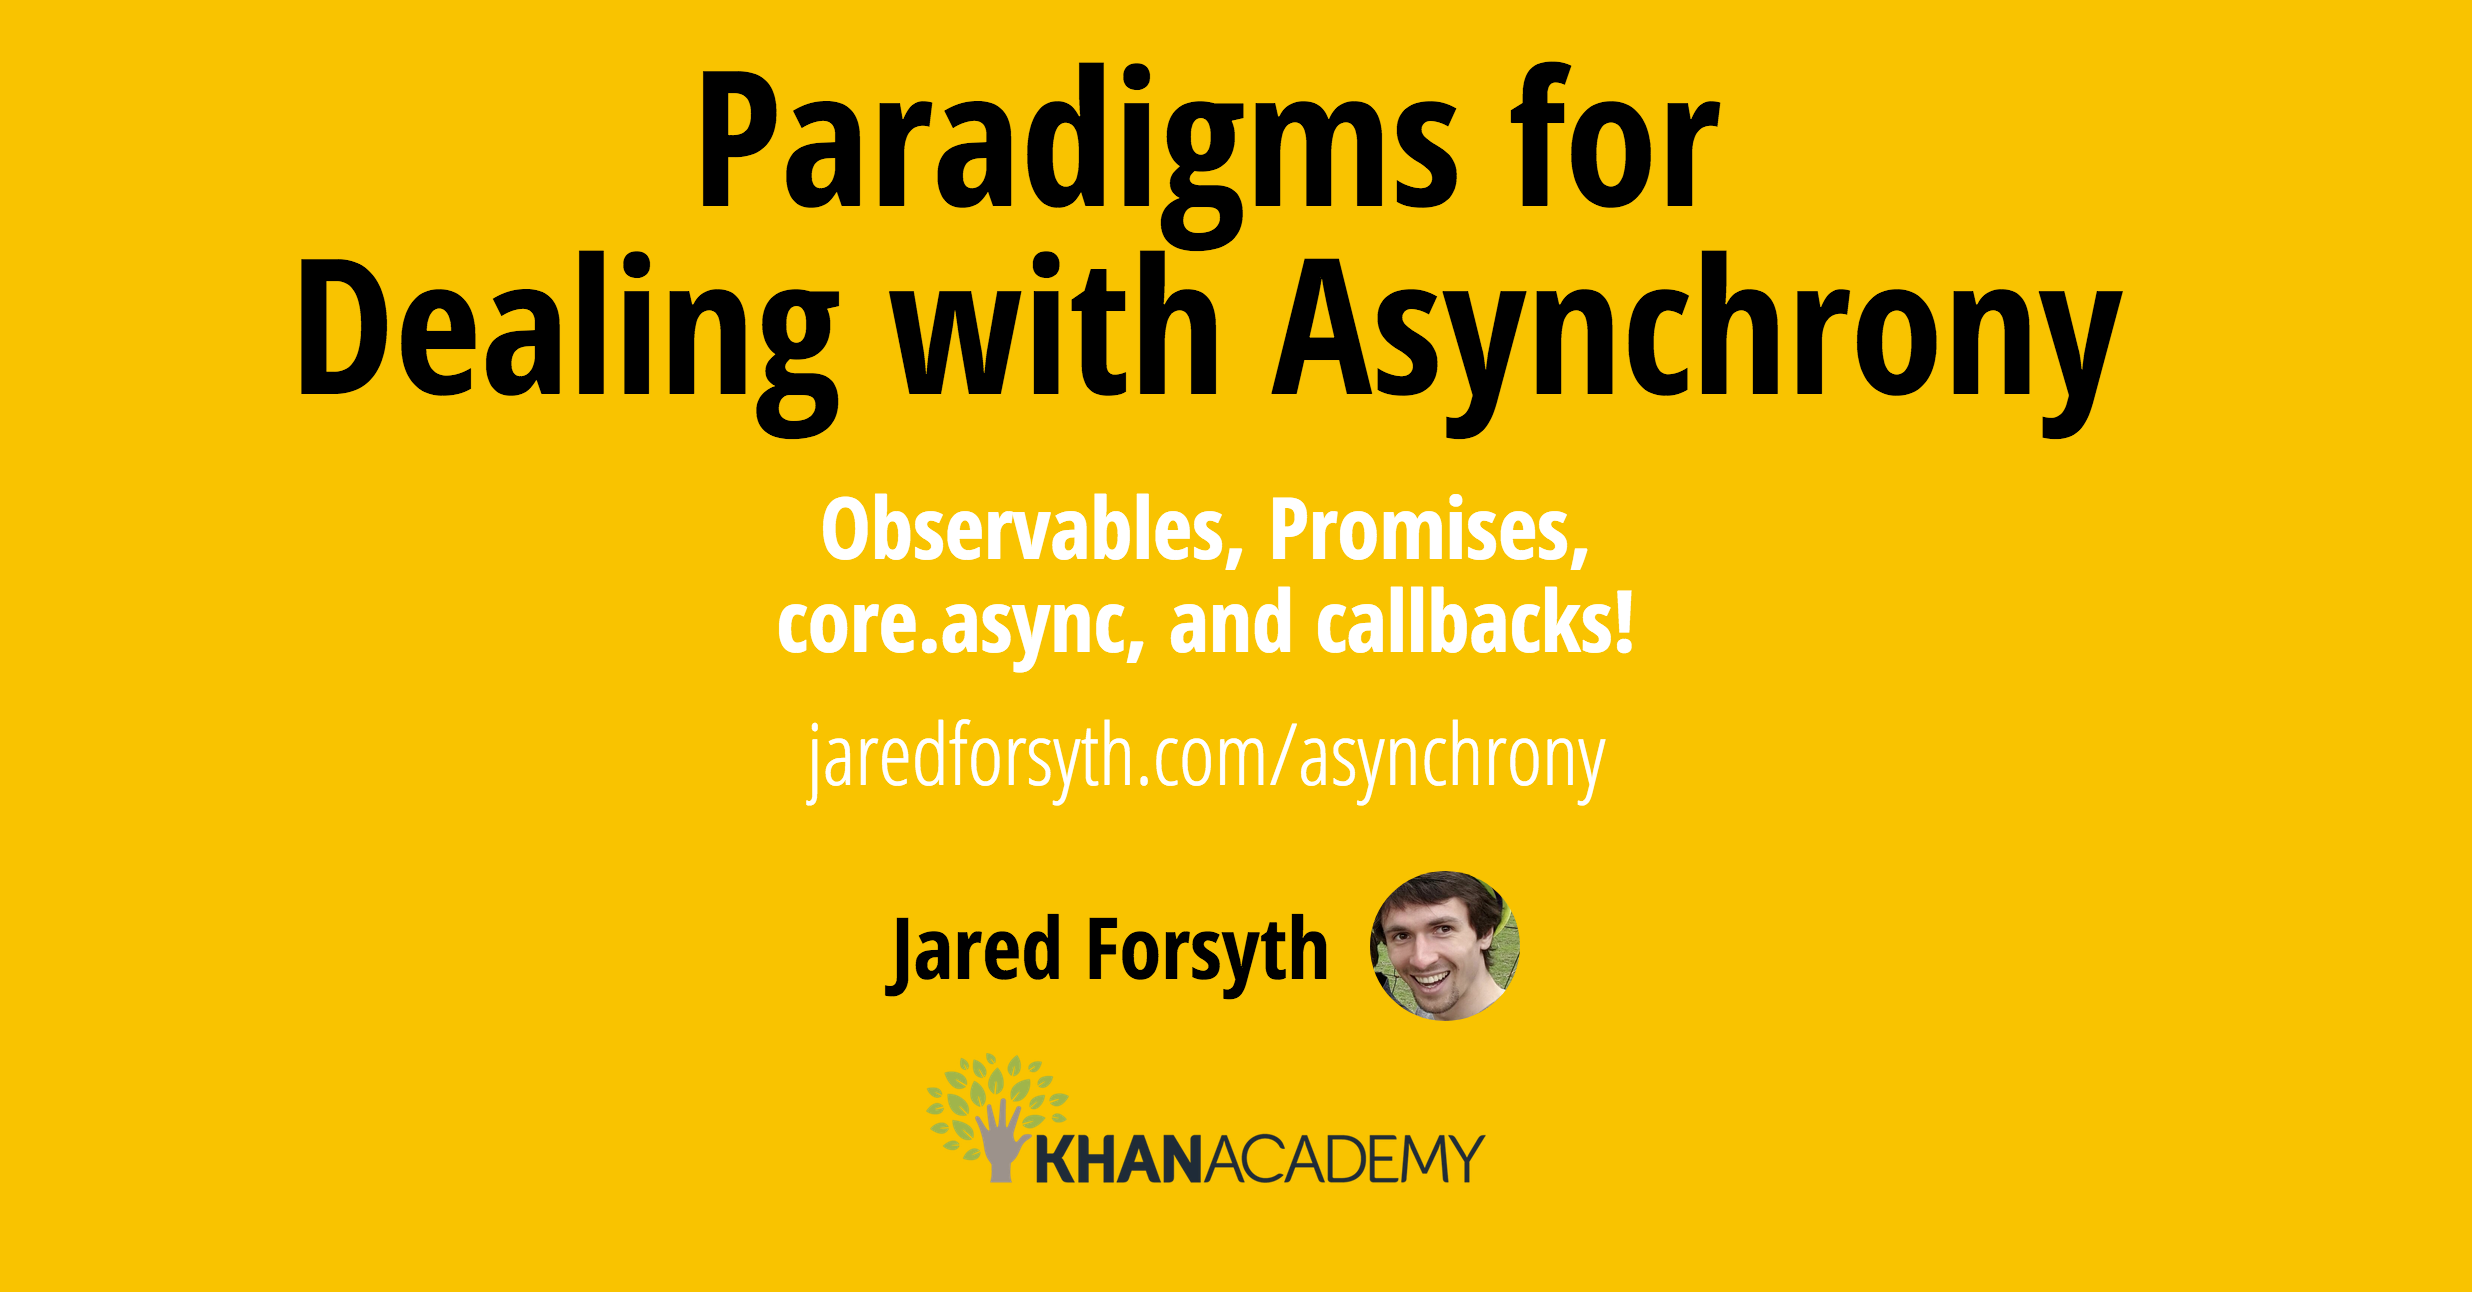 Paradigms for dealing with asynchrony